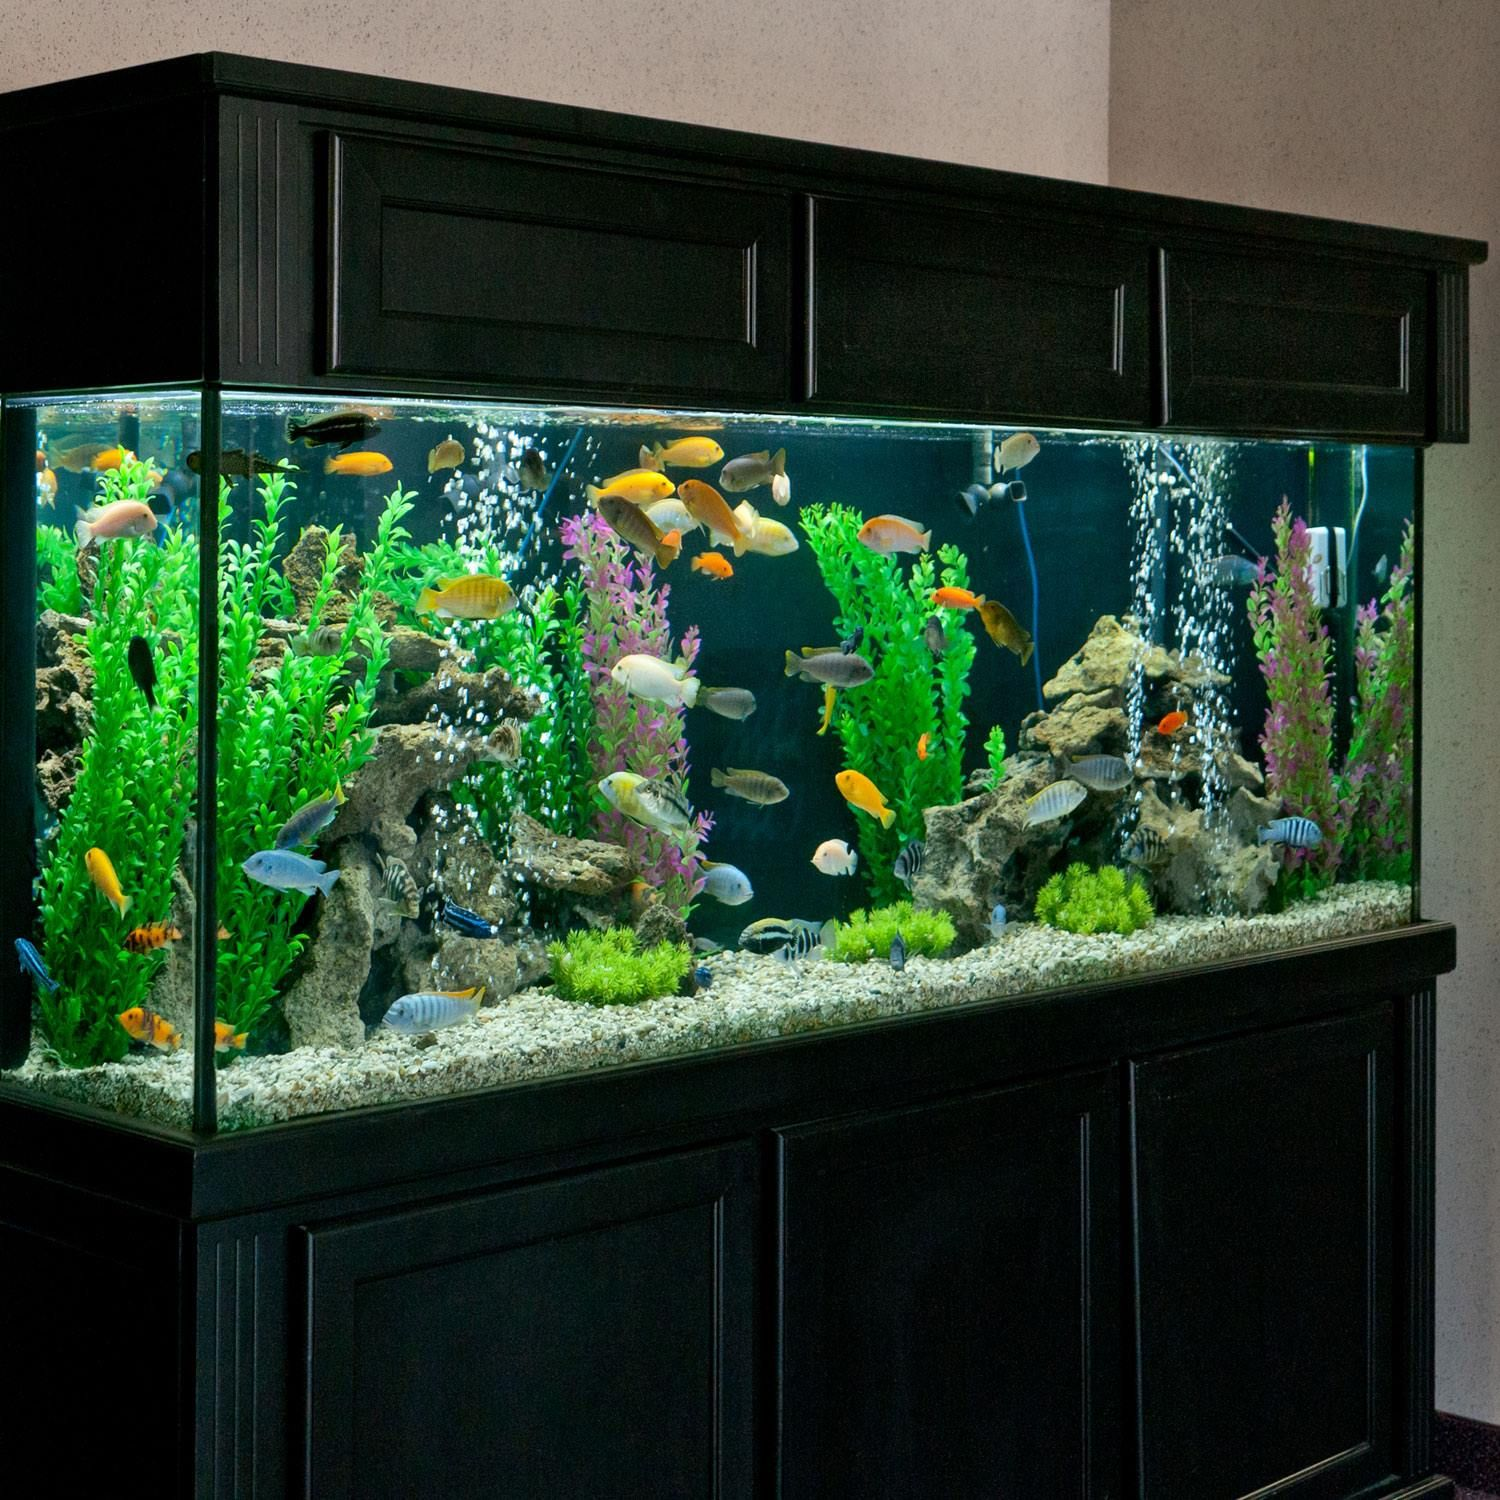 Home Aquarium Design Ideas: Not A Cichlid Fan, But What I Wouldn't Give For That Tank